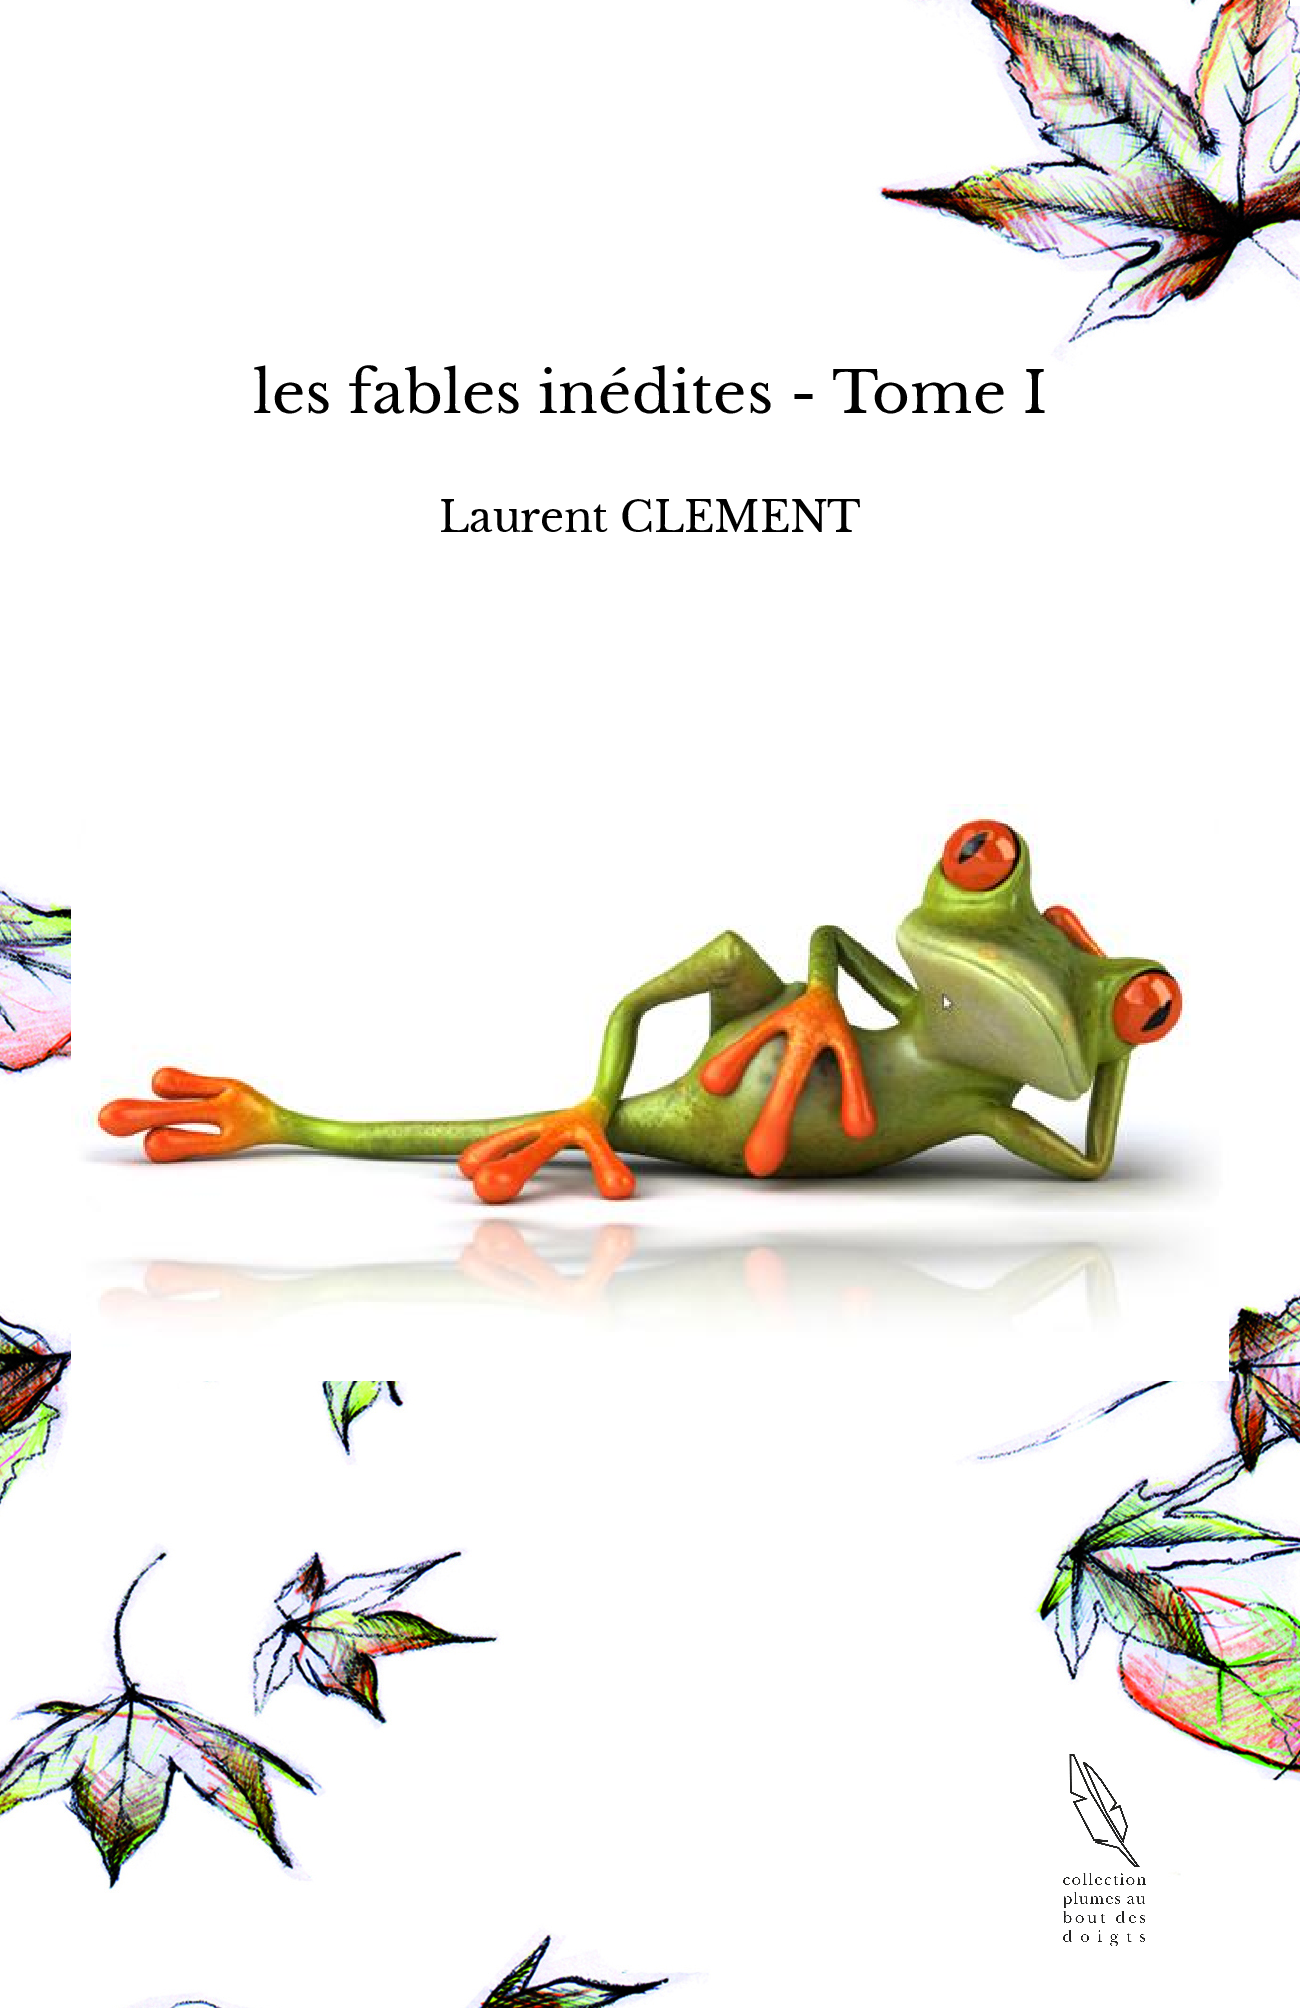 les fables inédites - Tome I